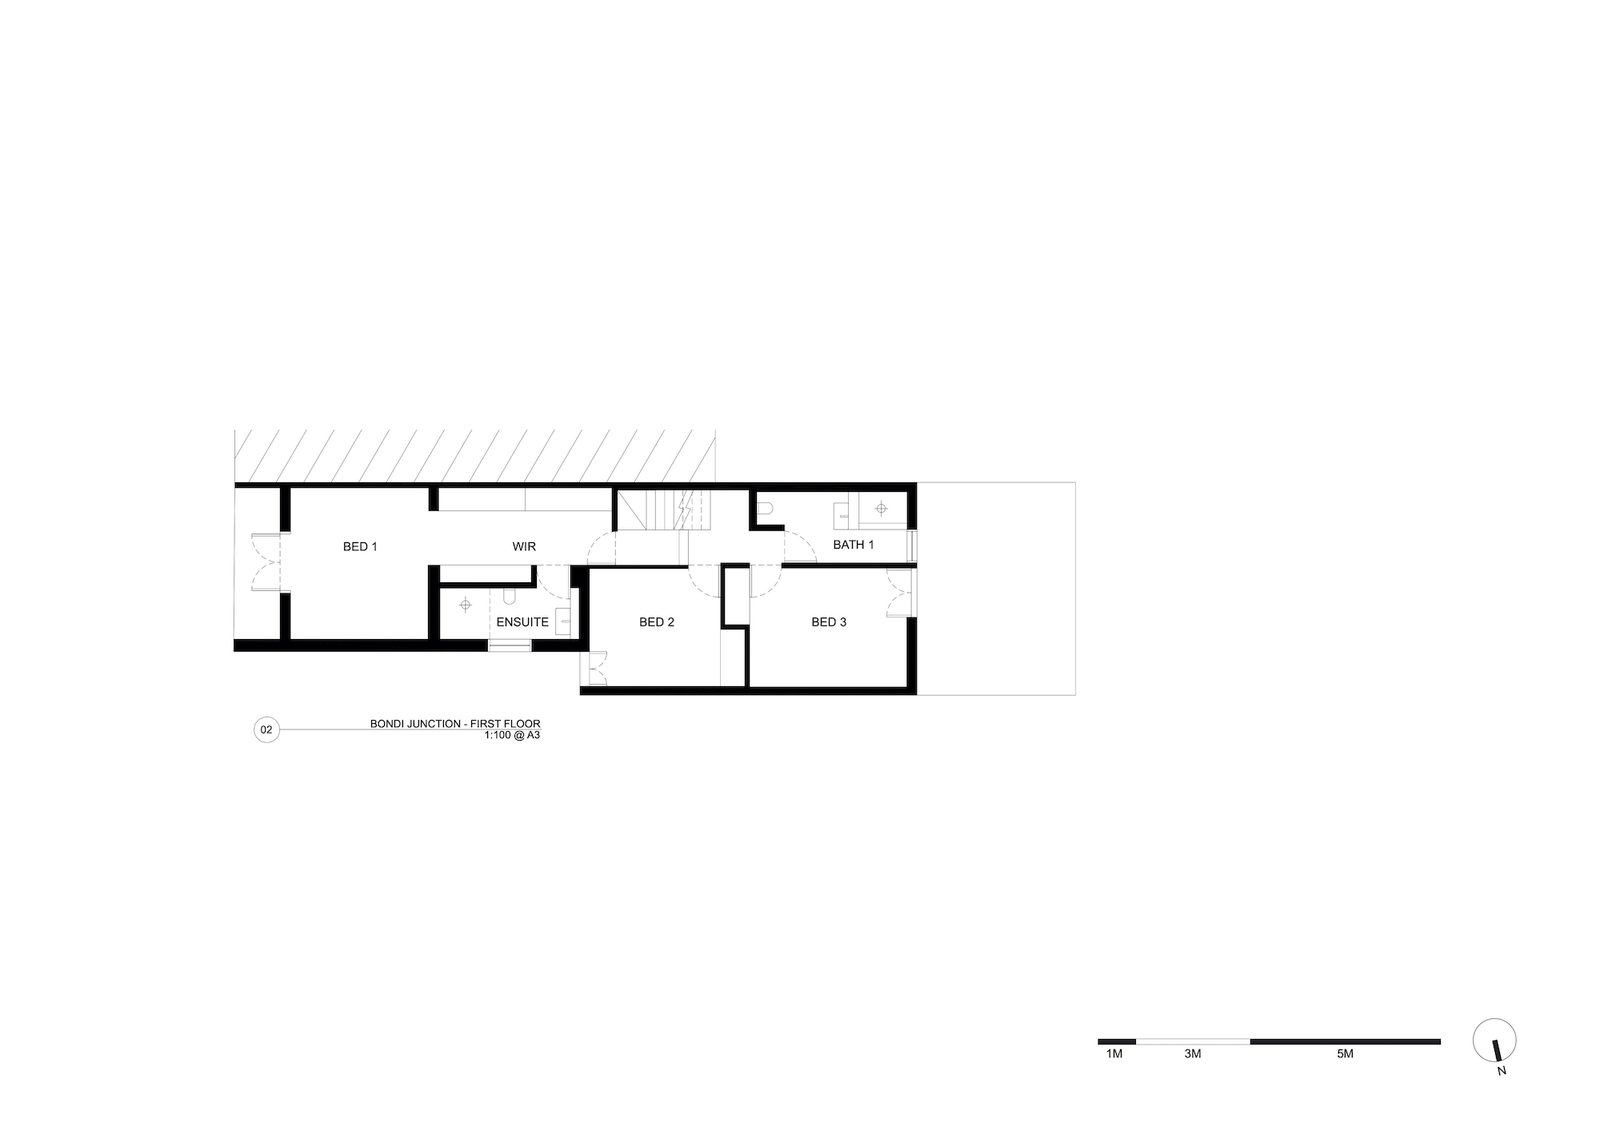 First floor plan of Bondi Junction House by Alexander & CO.